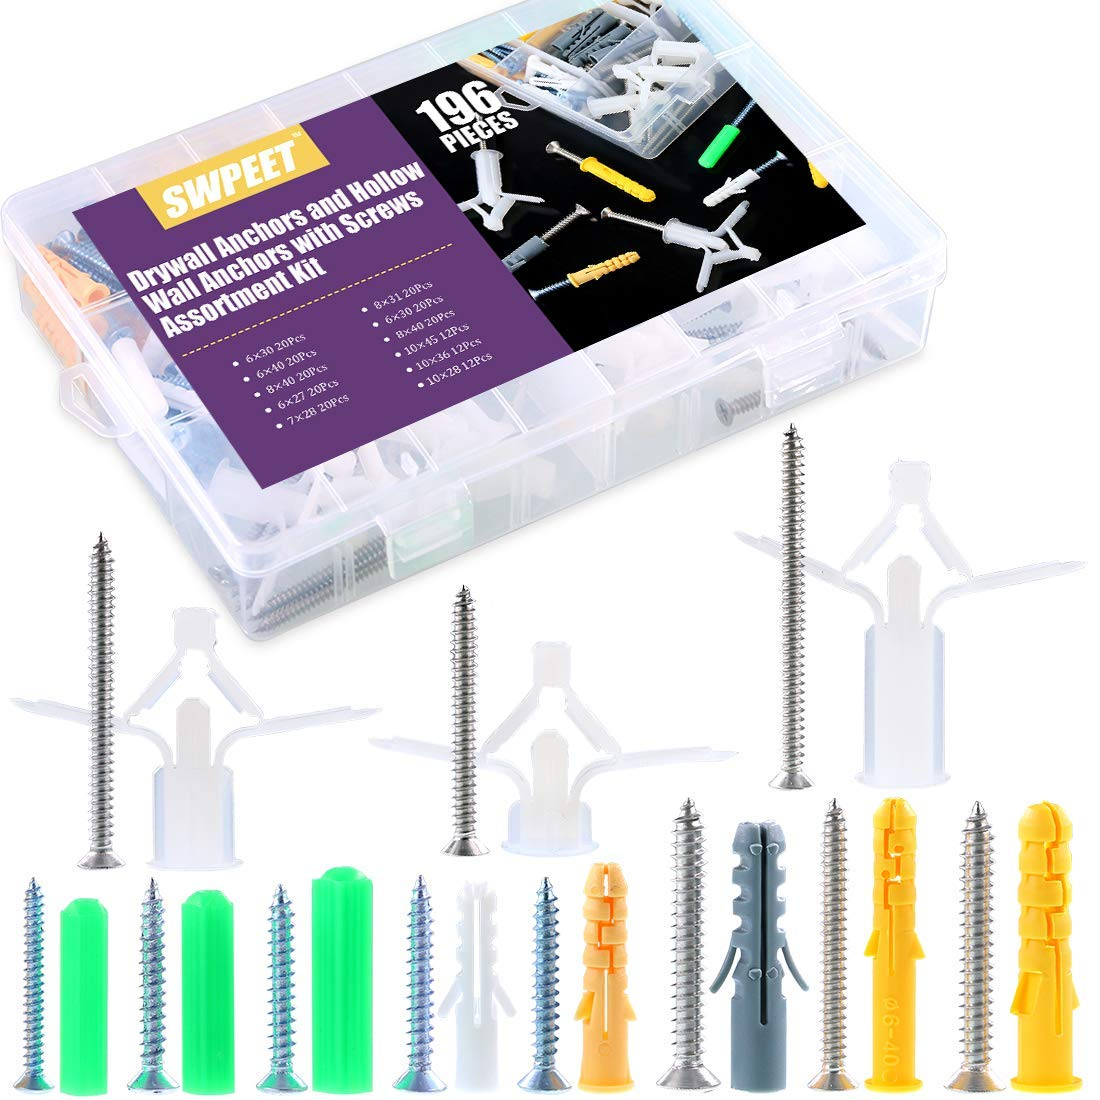 Swpeet 196Pcs Assorted Sizes Hollow Drywall Anchors Kit, Plastic Self Drilling Drywall Ribbed Anchors Assortment with Screws Perfect for Fixing Curtains, Calligraphy, Wall Cabinets, Lamps